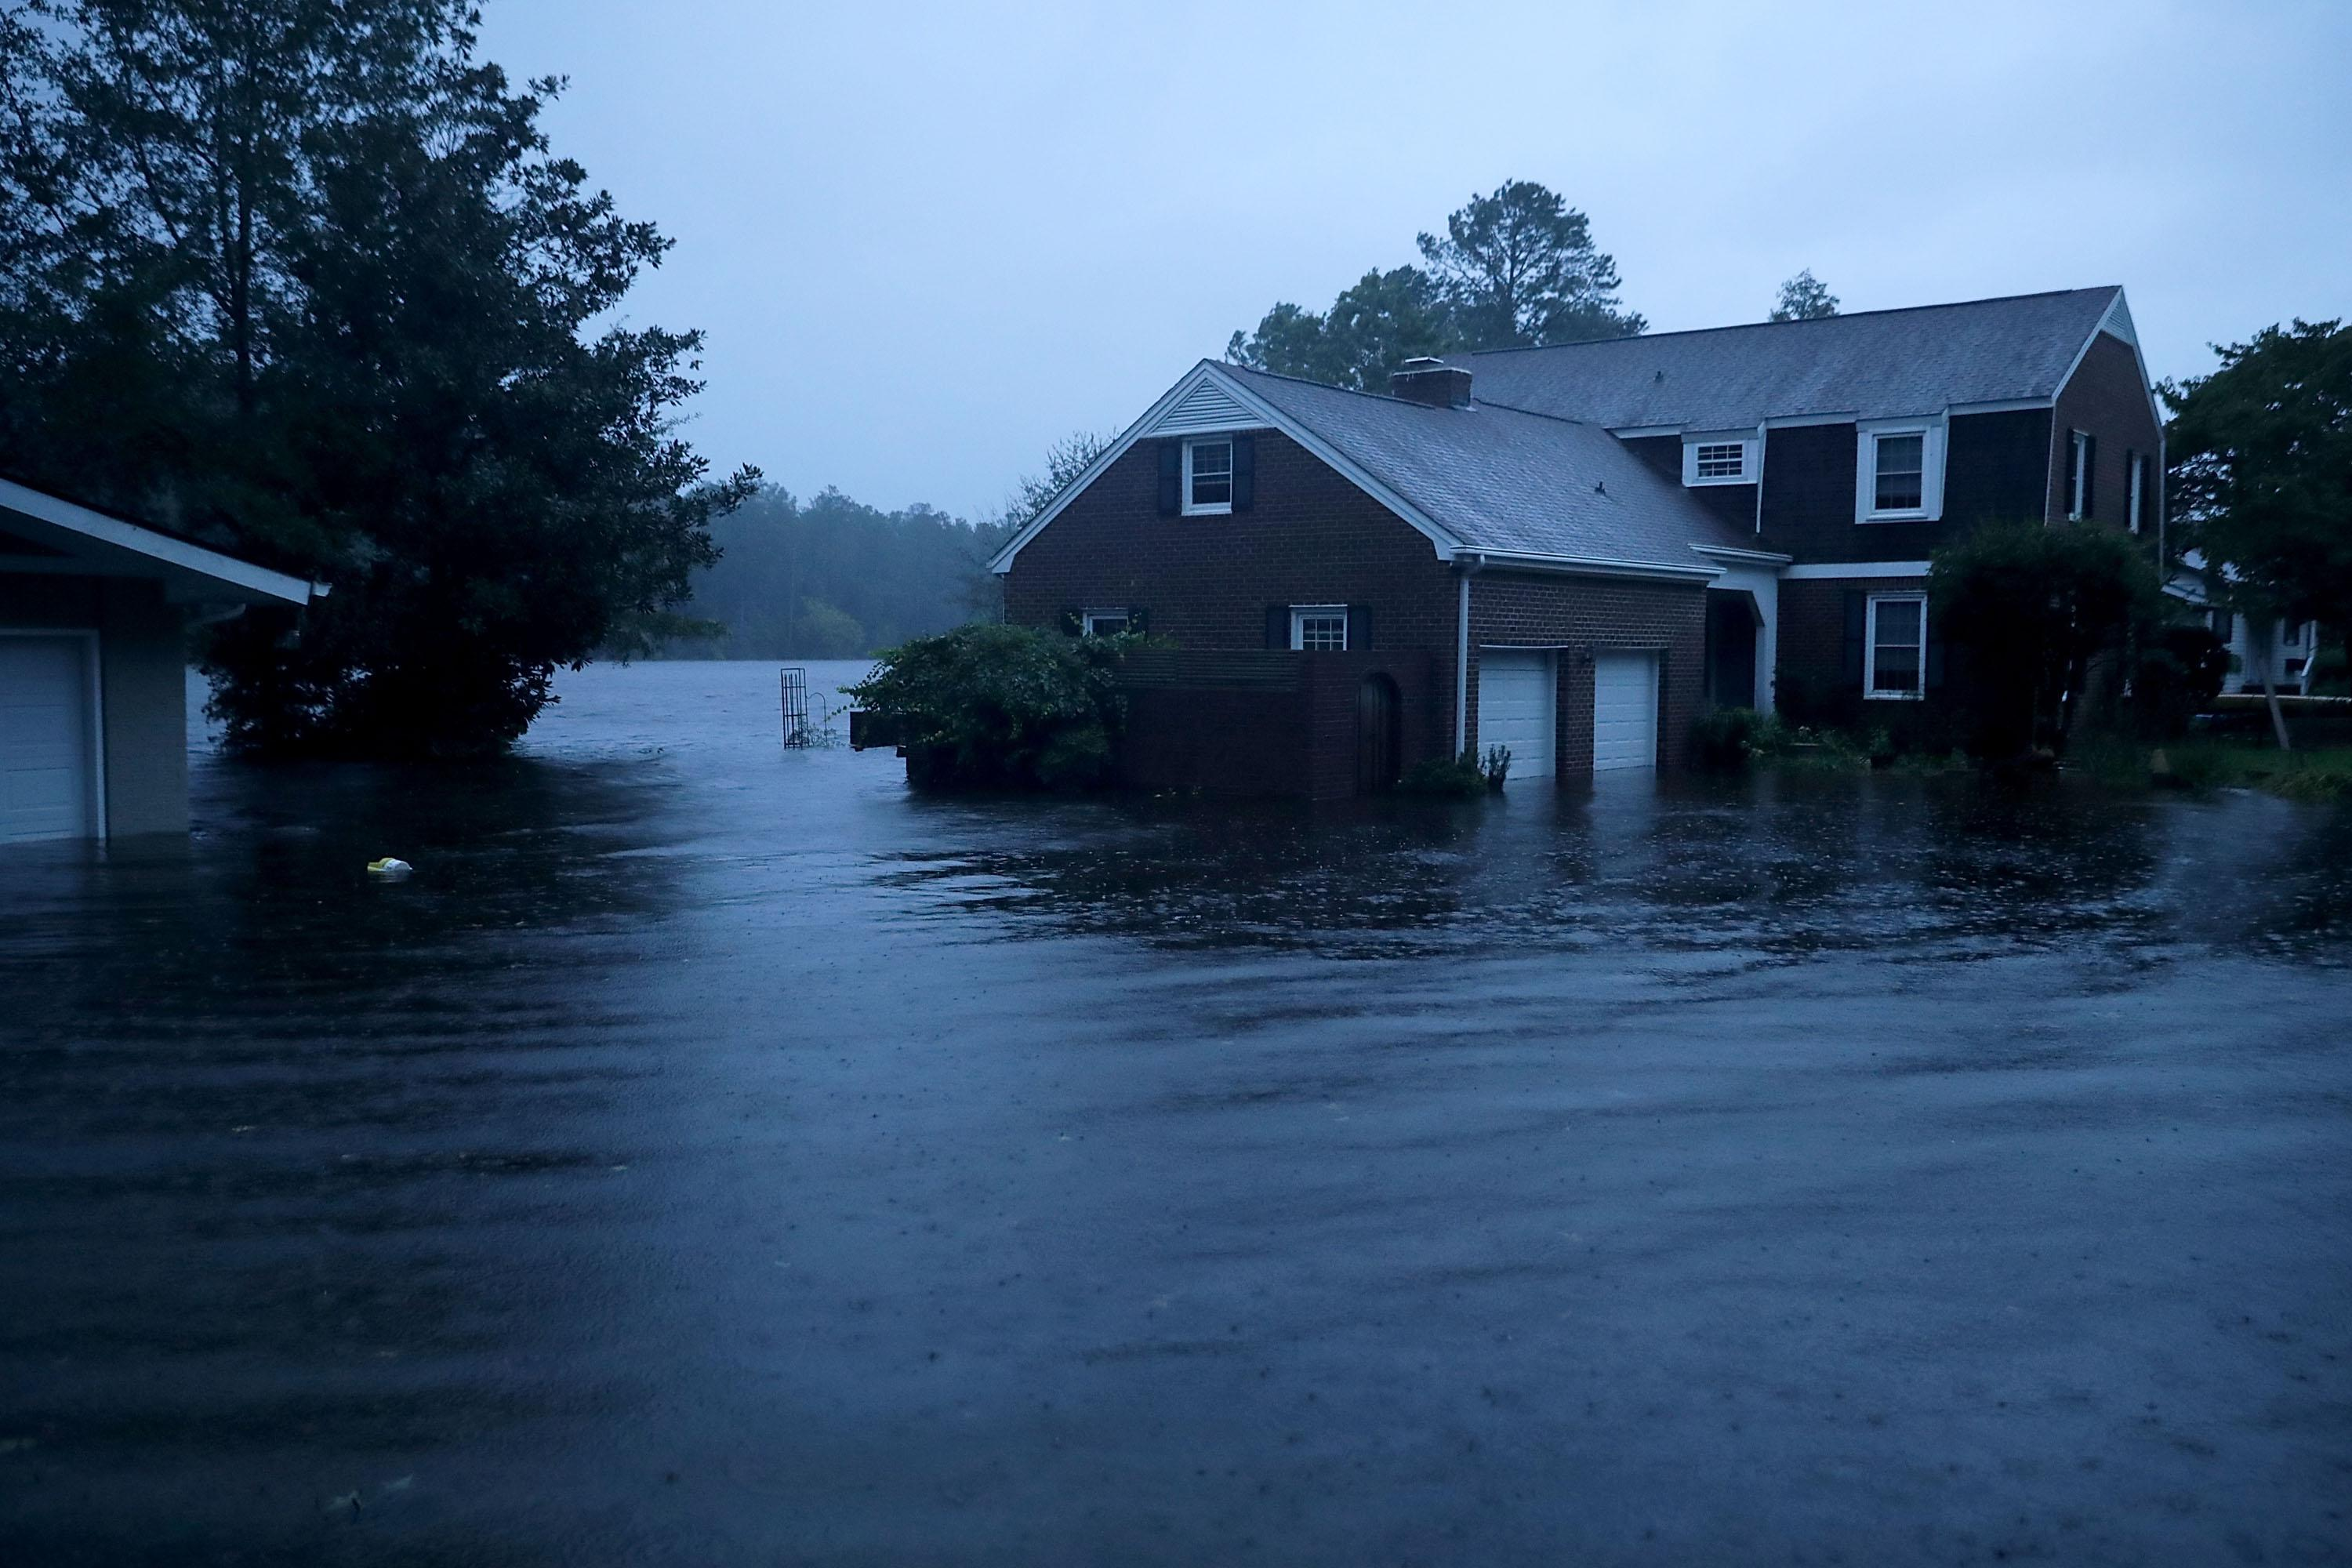 The Trent River (background) overflows its banks and floods a neighborhood during Hurricane Florence September 13, 2018 in River Bend, North Carolina. Some parts of River Bend and the neighboring New Bern could be flooded with a possible 9-foot storm surge as the Category 2 hurricane approaches the United States.  (Photo by Chip Somodevilla/Getty Images)